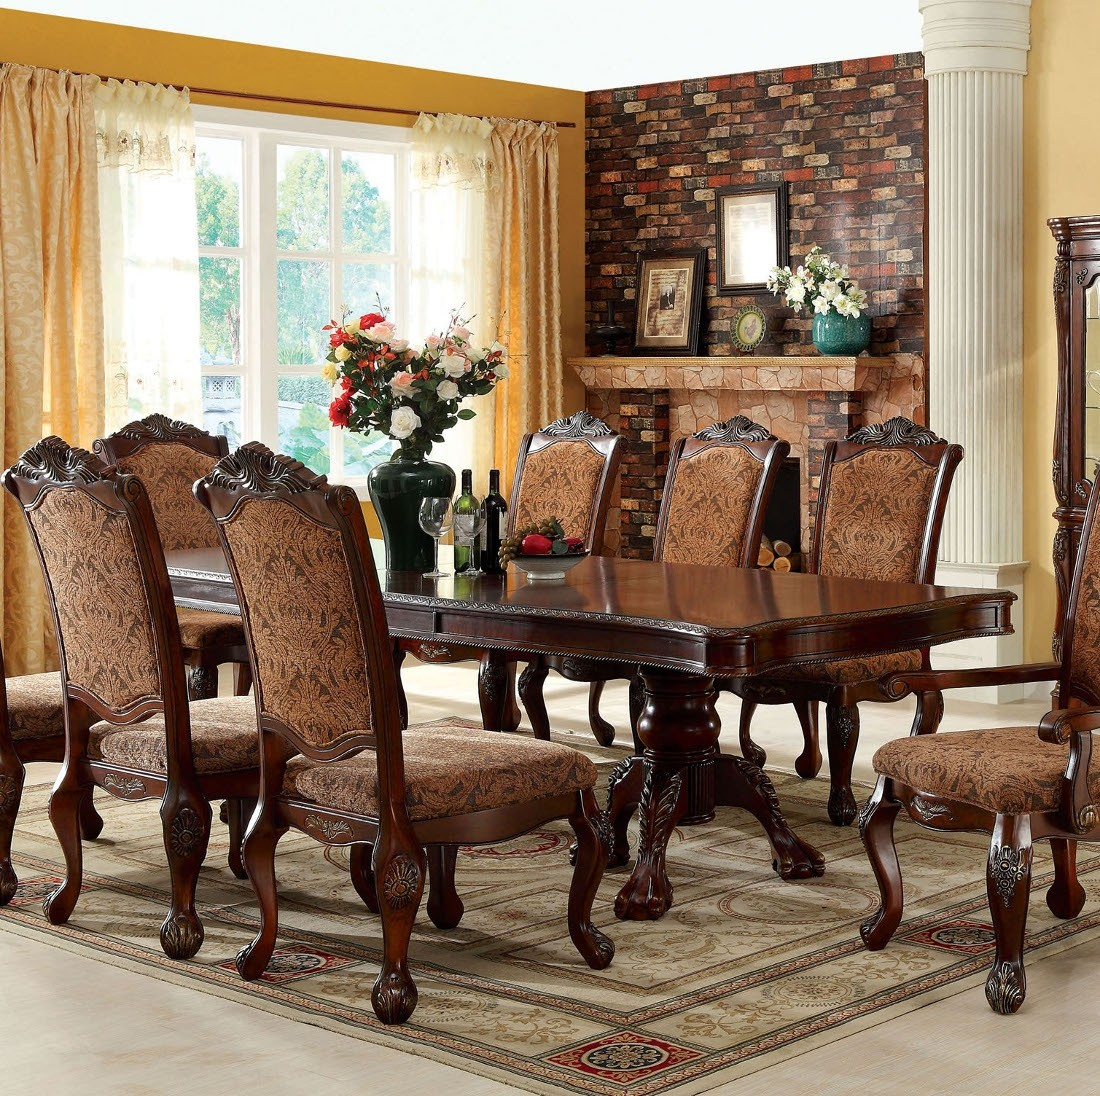 Furniture Of America Cromwell Dining Room Set In Antique Cherry in Antique Living Room Set